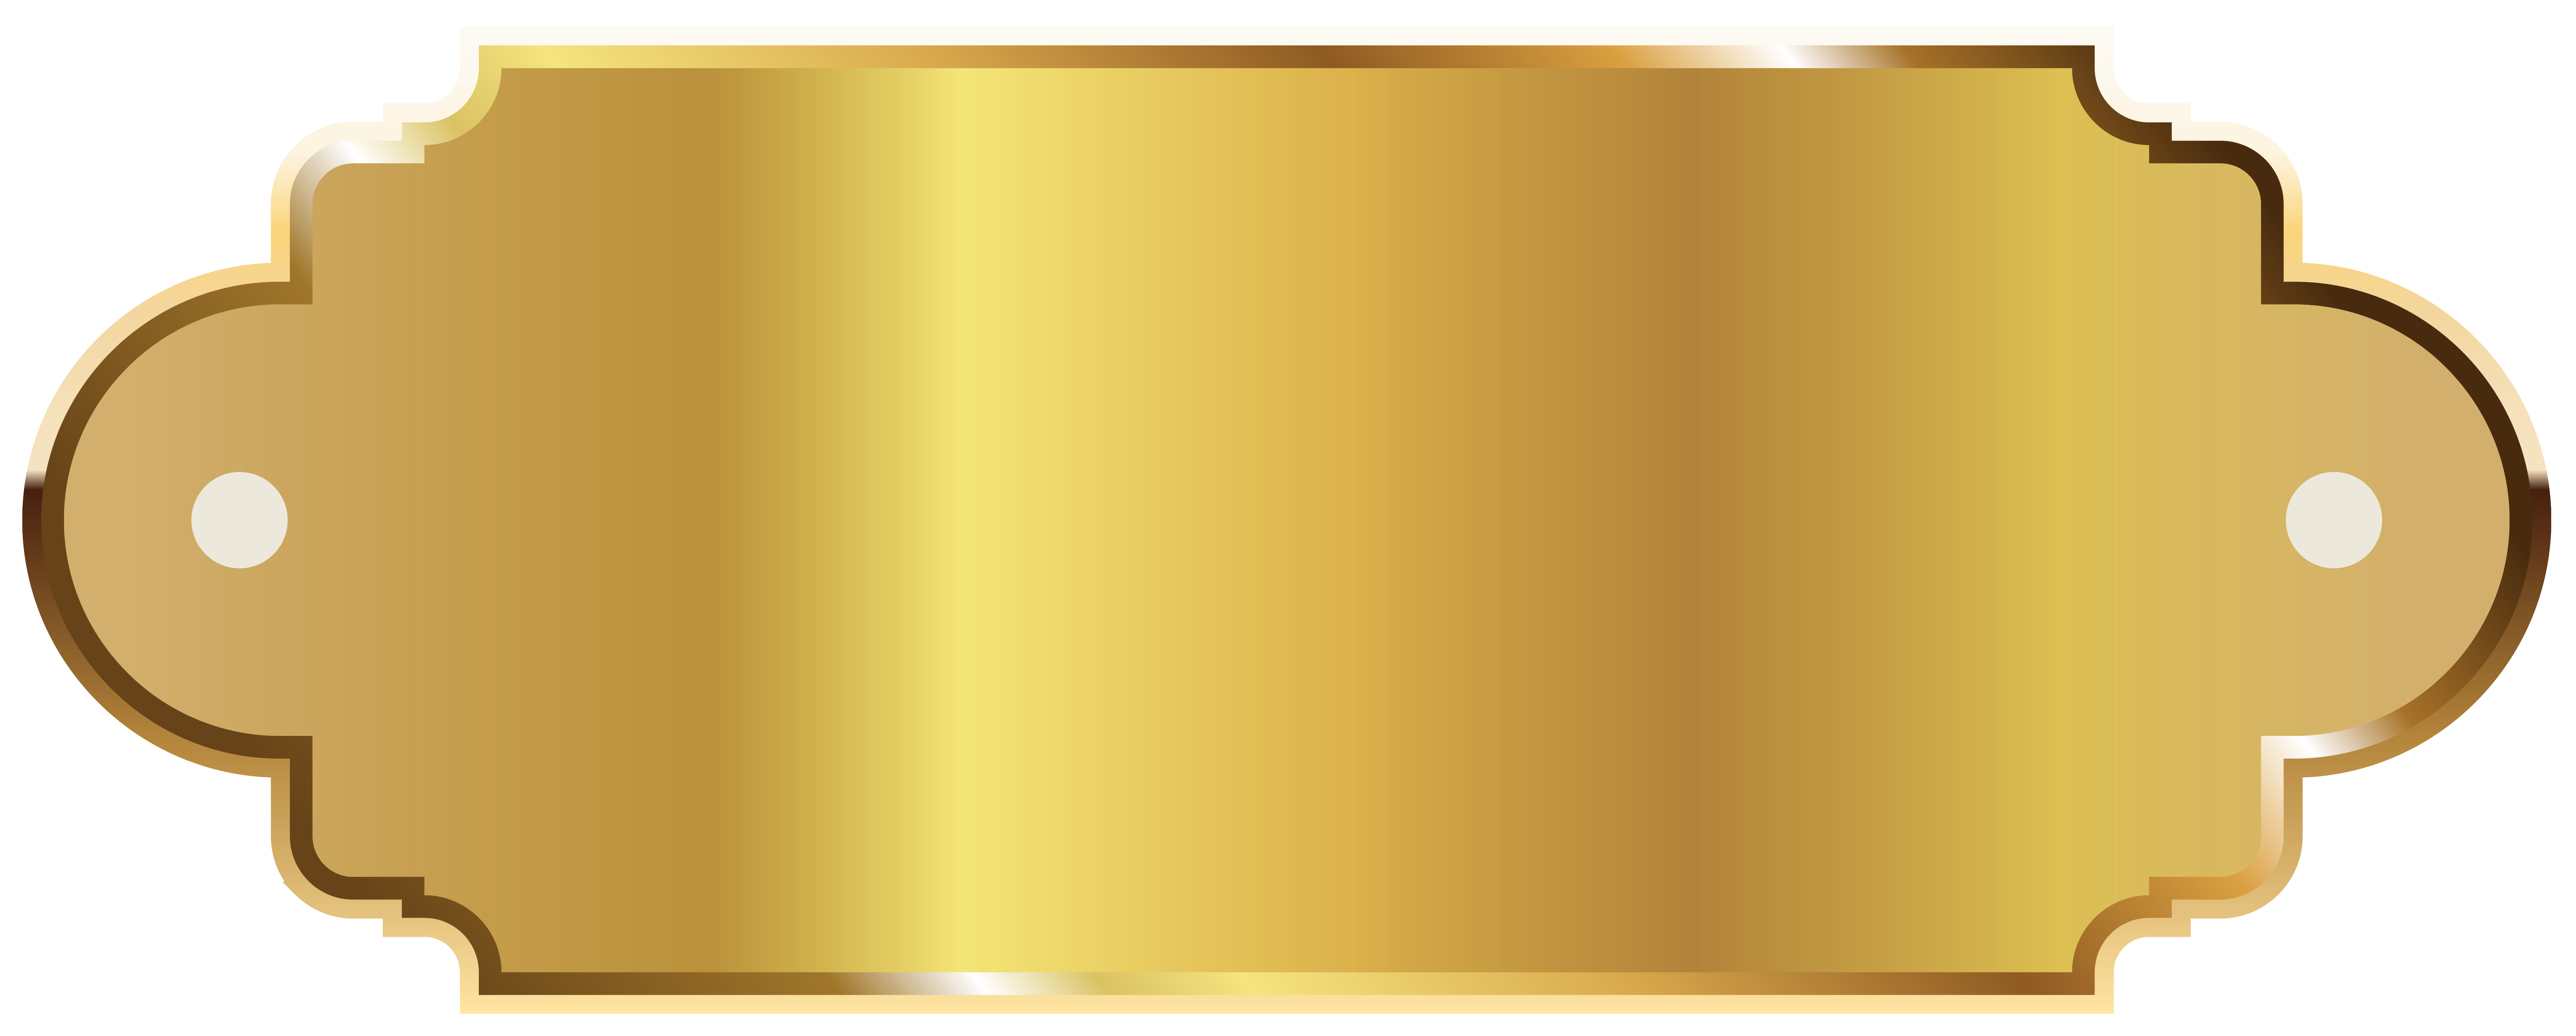 Golden Label Template Clipart PNG Image.